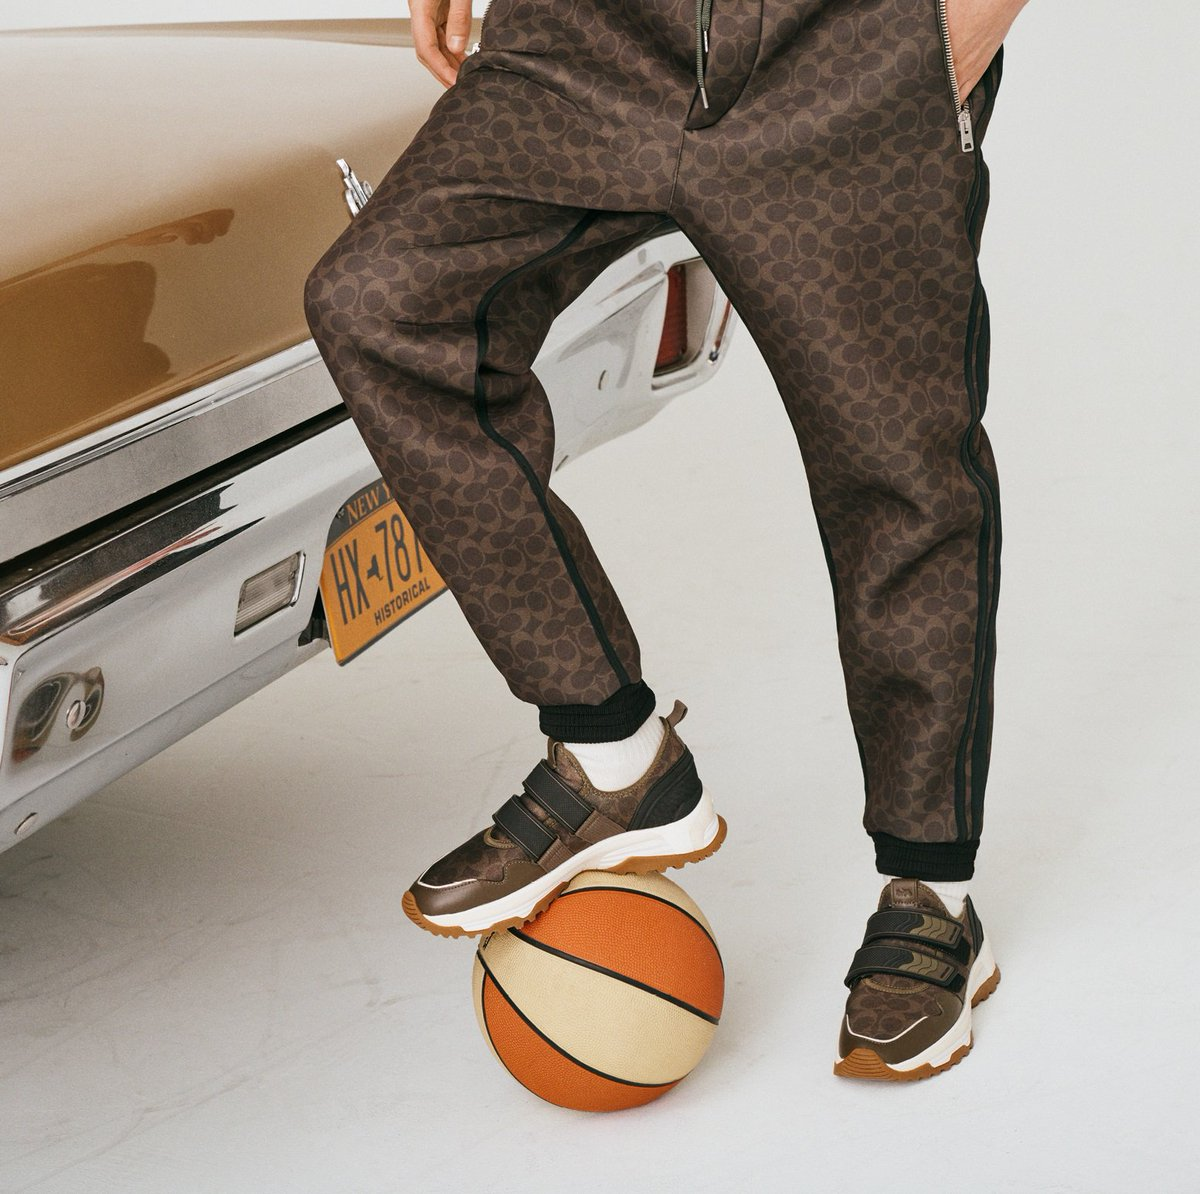 On the ball. Meet our C143 Two Strap Runner—an of-the-moment shape in a chocolatey take on our Signature pattern. http://on.coach.com/C143Runner #CoachNY